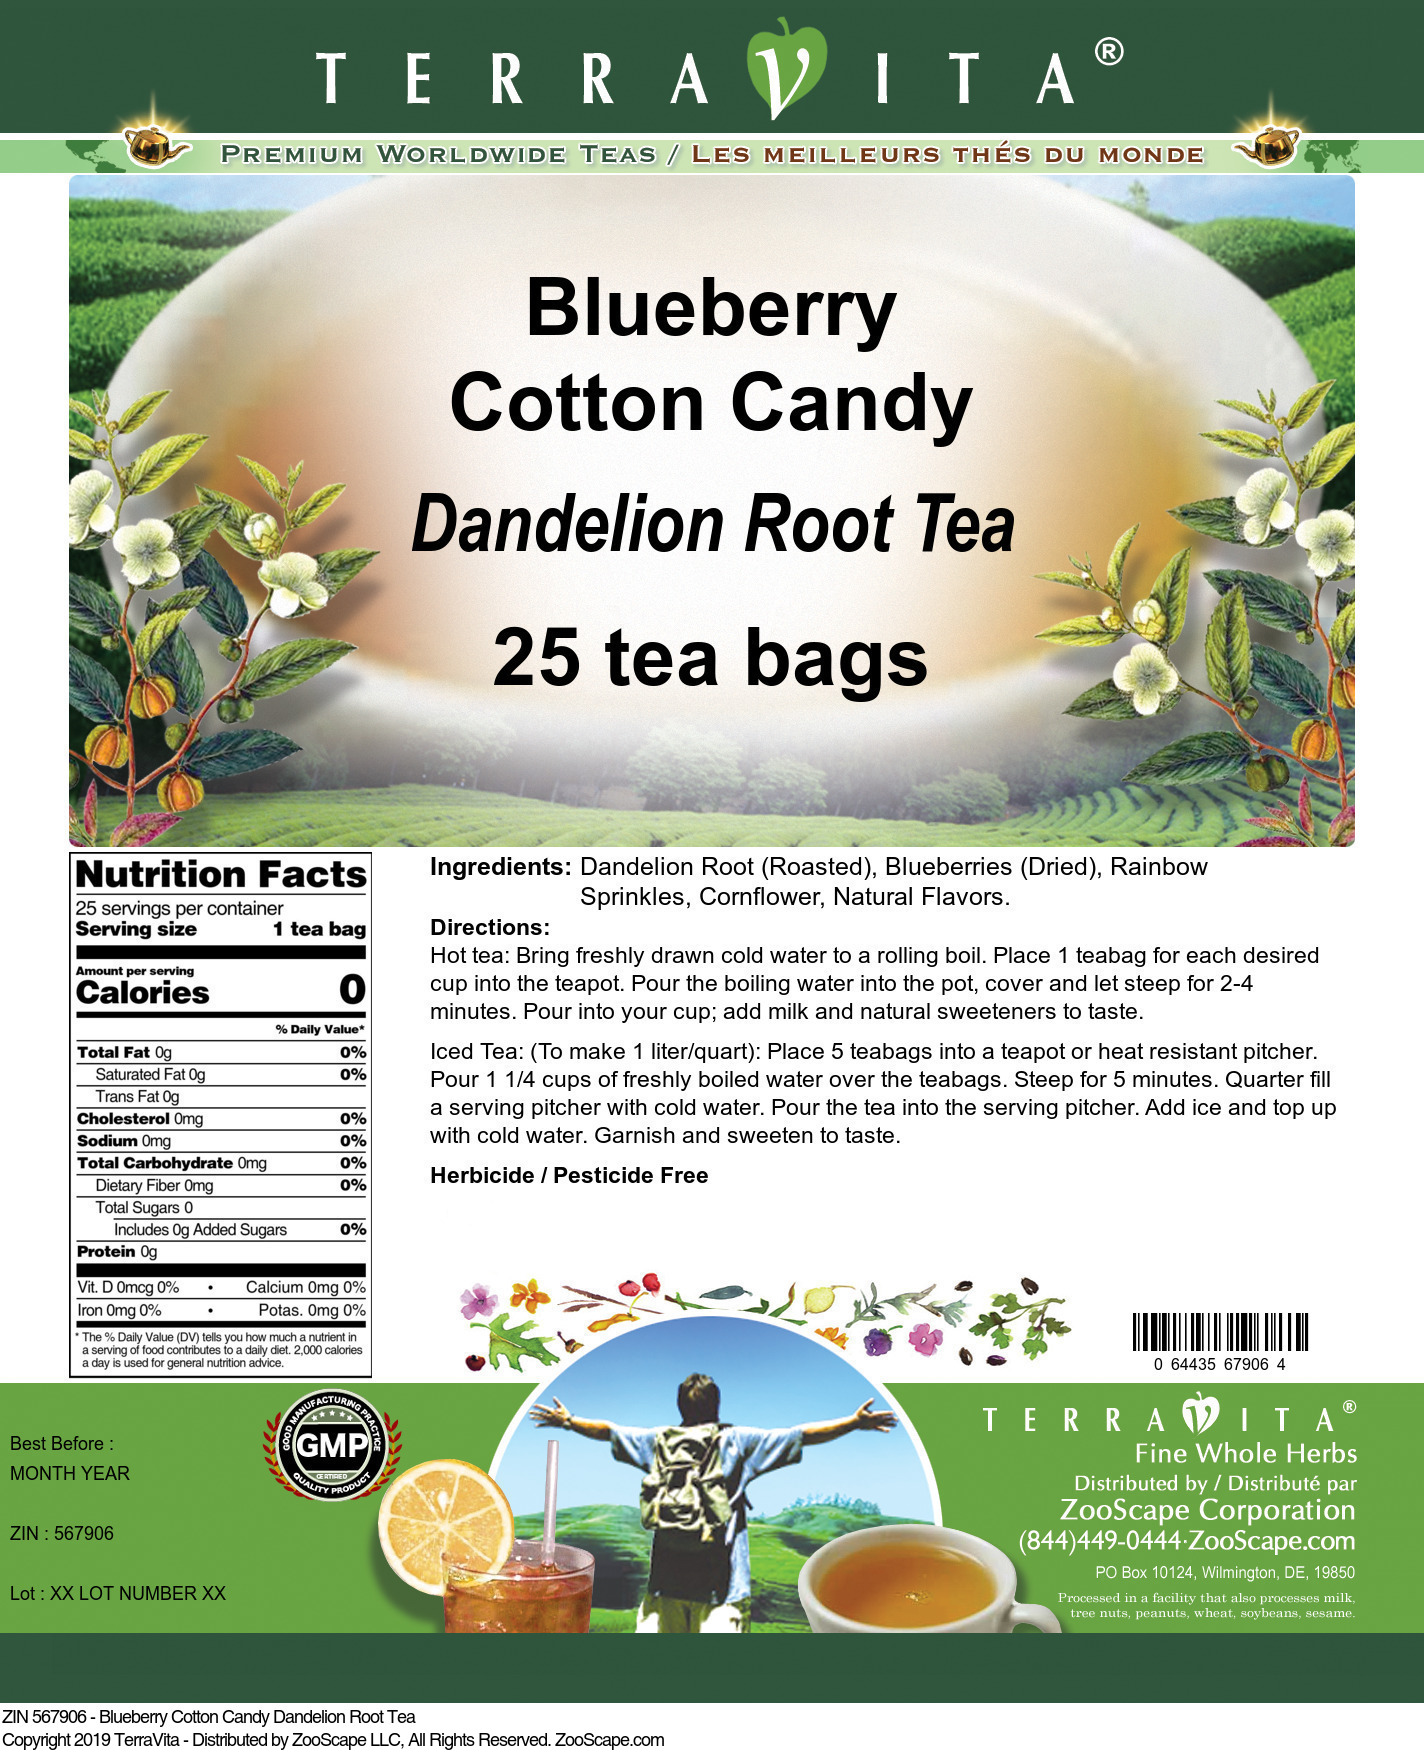 Blueberry Cotton Candy Dandelion Root